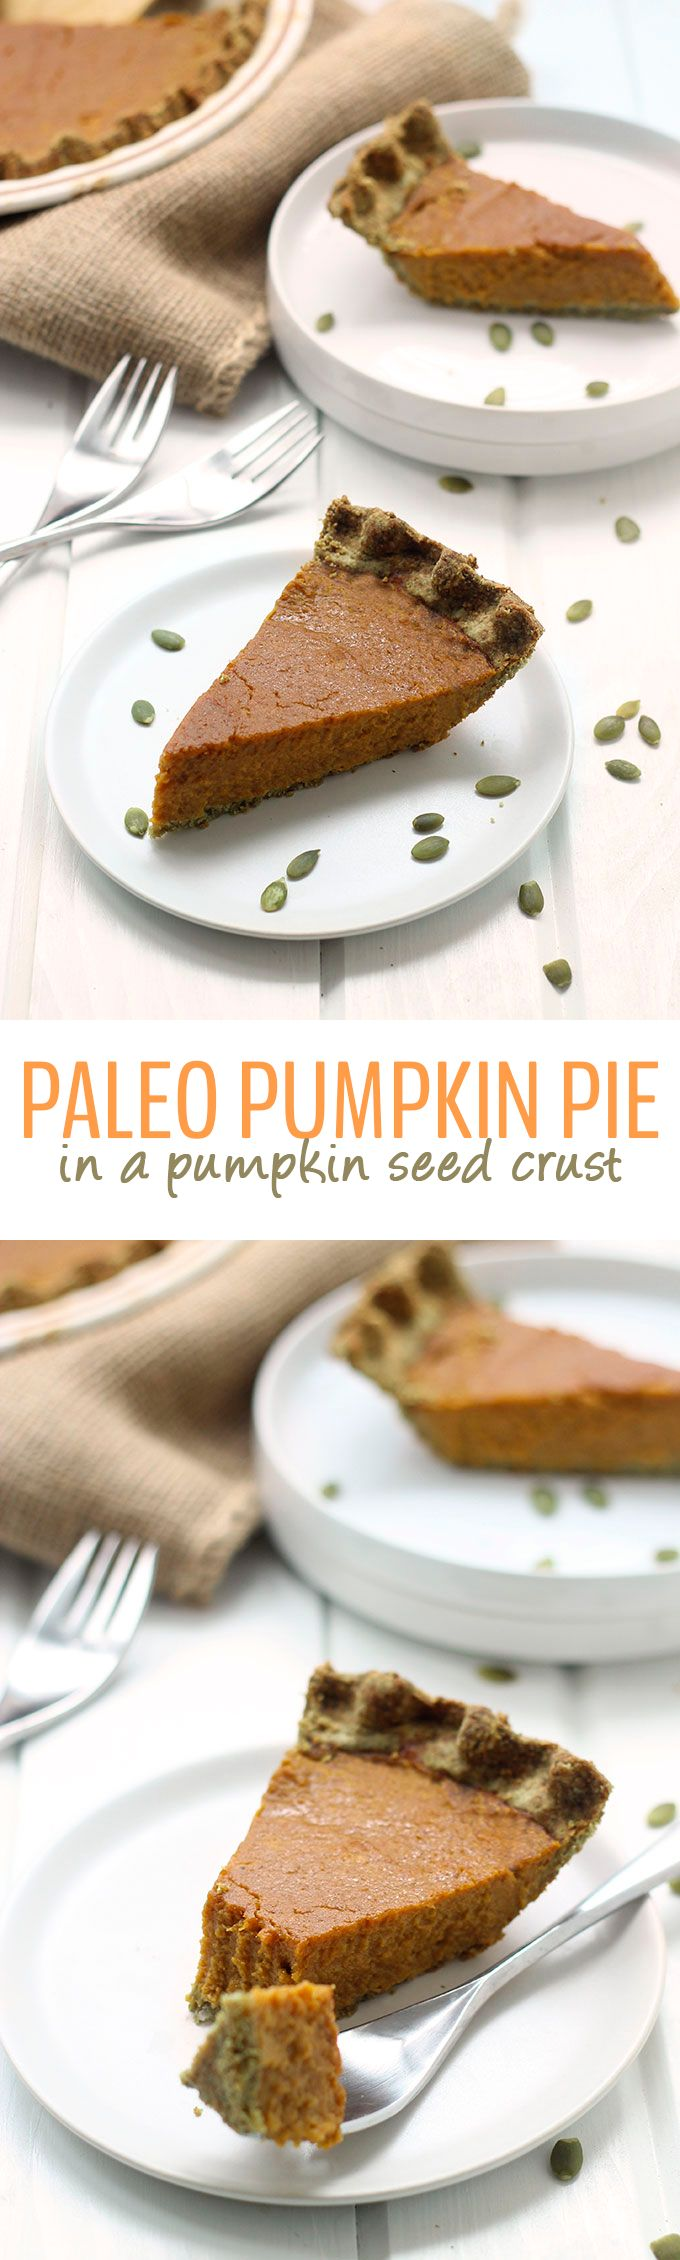 Paleo Pumpkin Pie in a Pumpkin Seed Crust plus a full Paleo Thanksgiving Dinner Menu that includes everything besides the turkey!